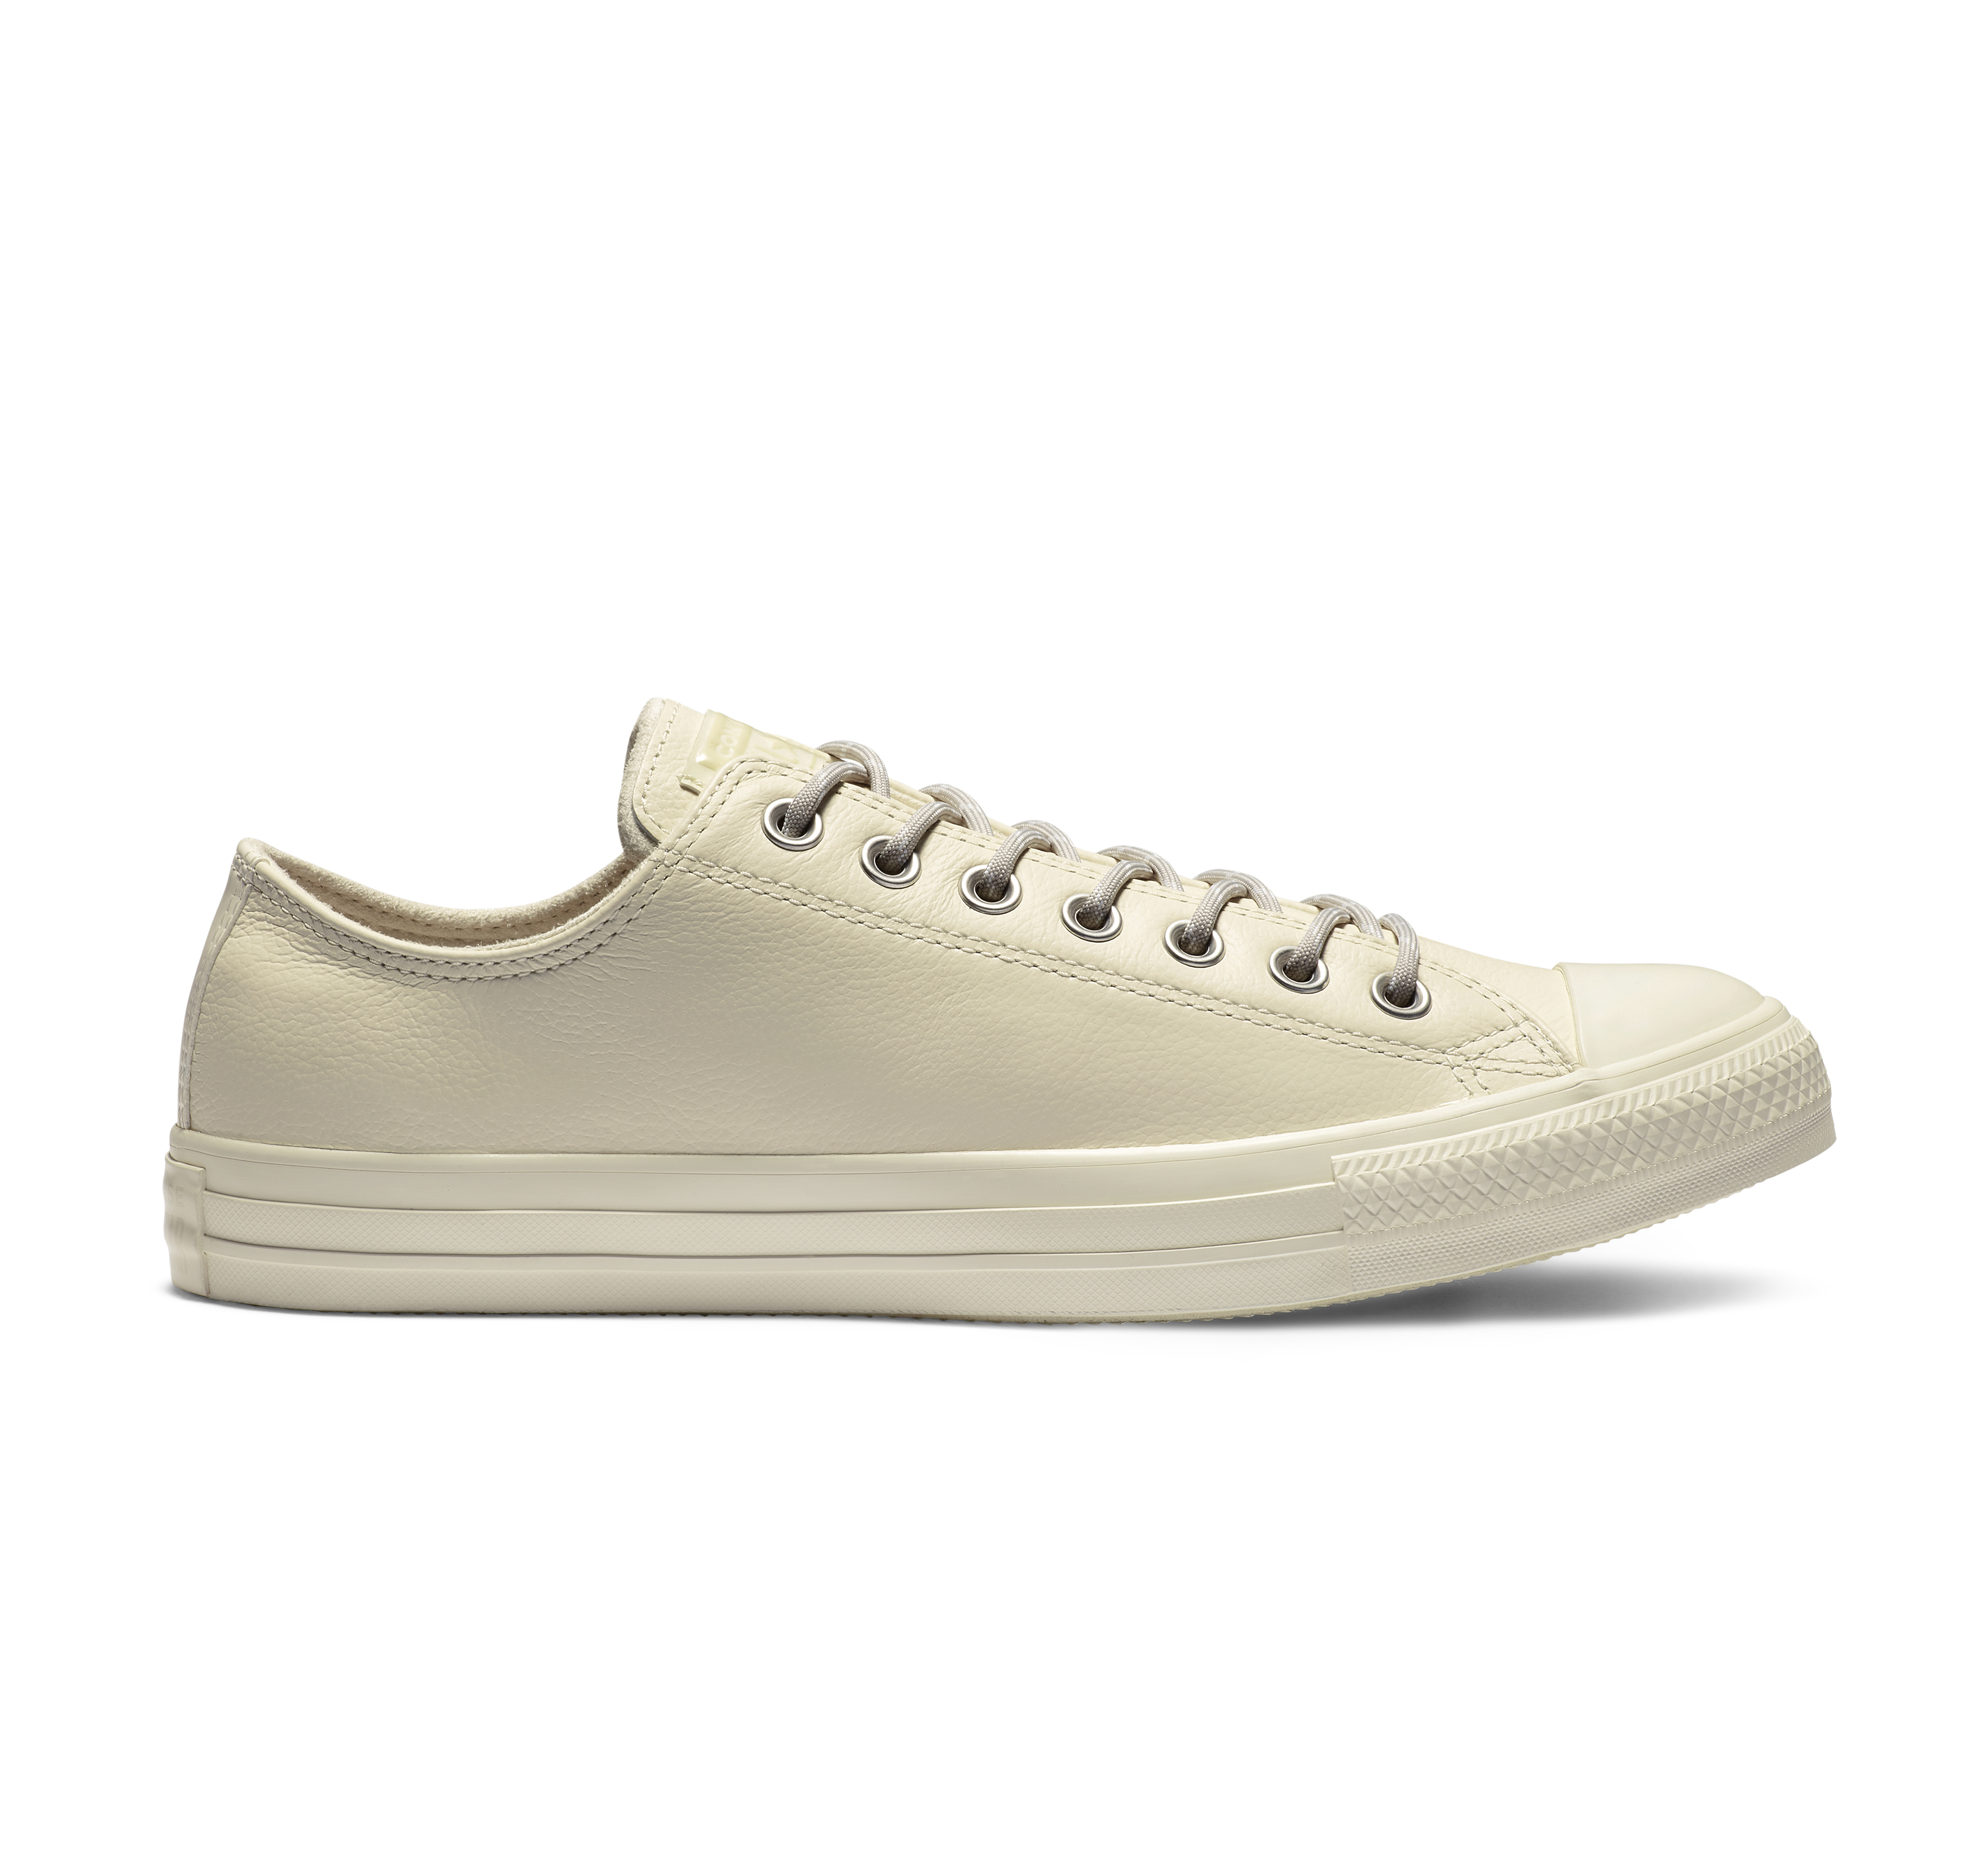 chuck taylor all star limo leather low